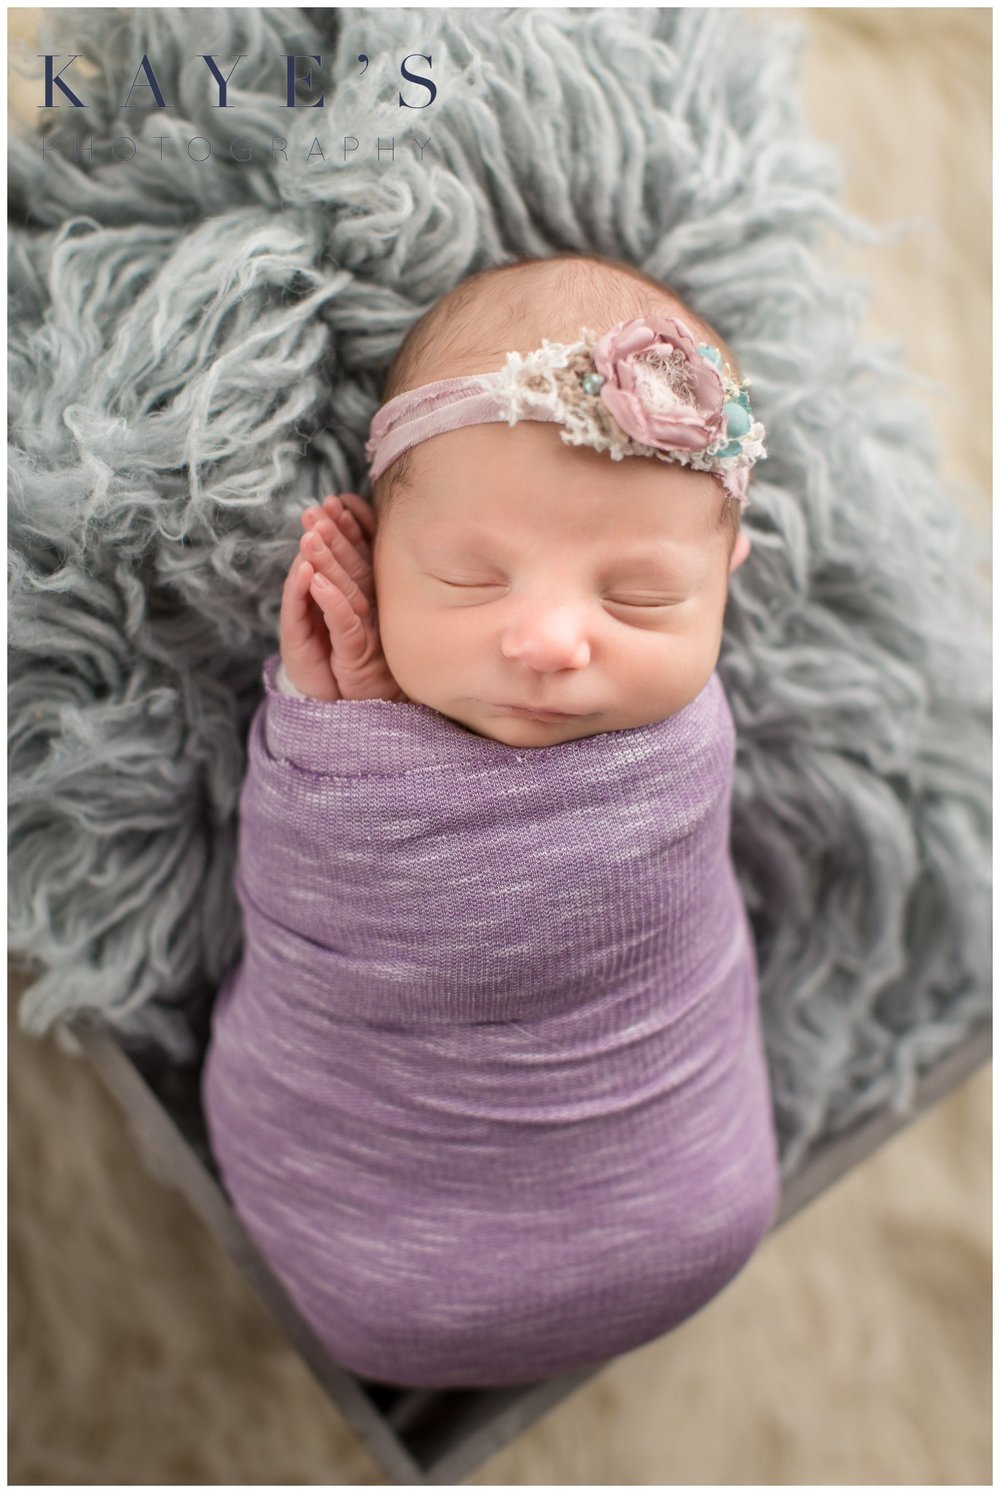 Celebrity newborn portraits of baby girl wearing purple wrap in basket with a headband